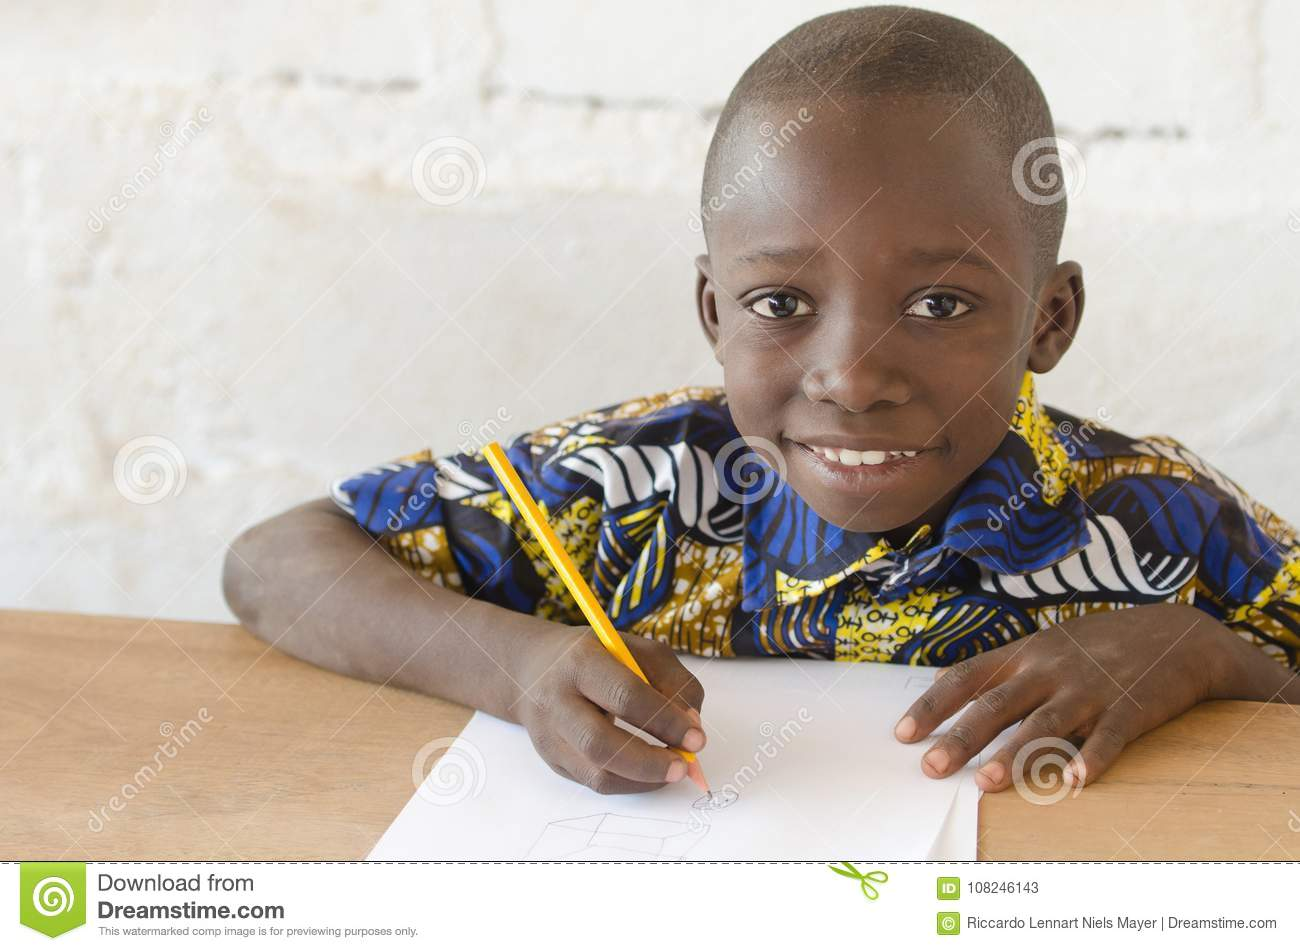 Adorable African Boy at School Looking at Camera with Copy Space